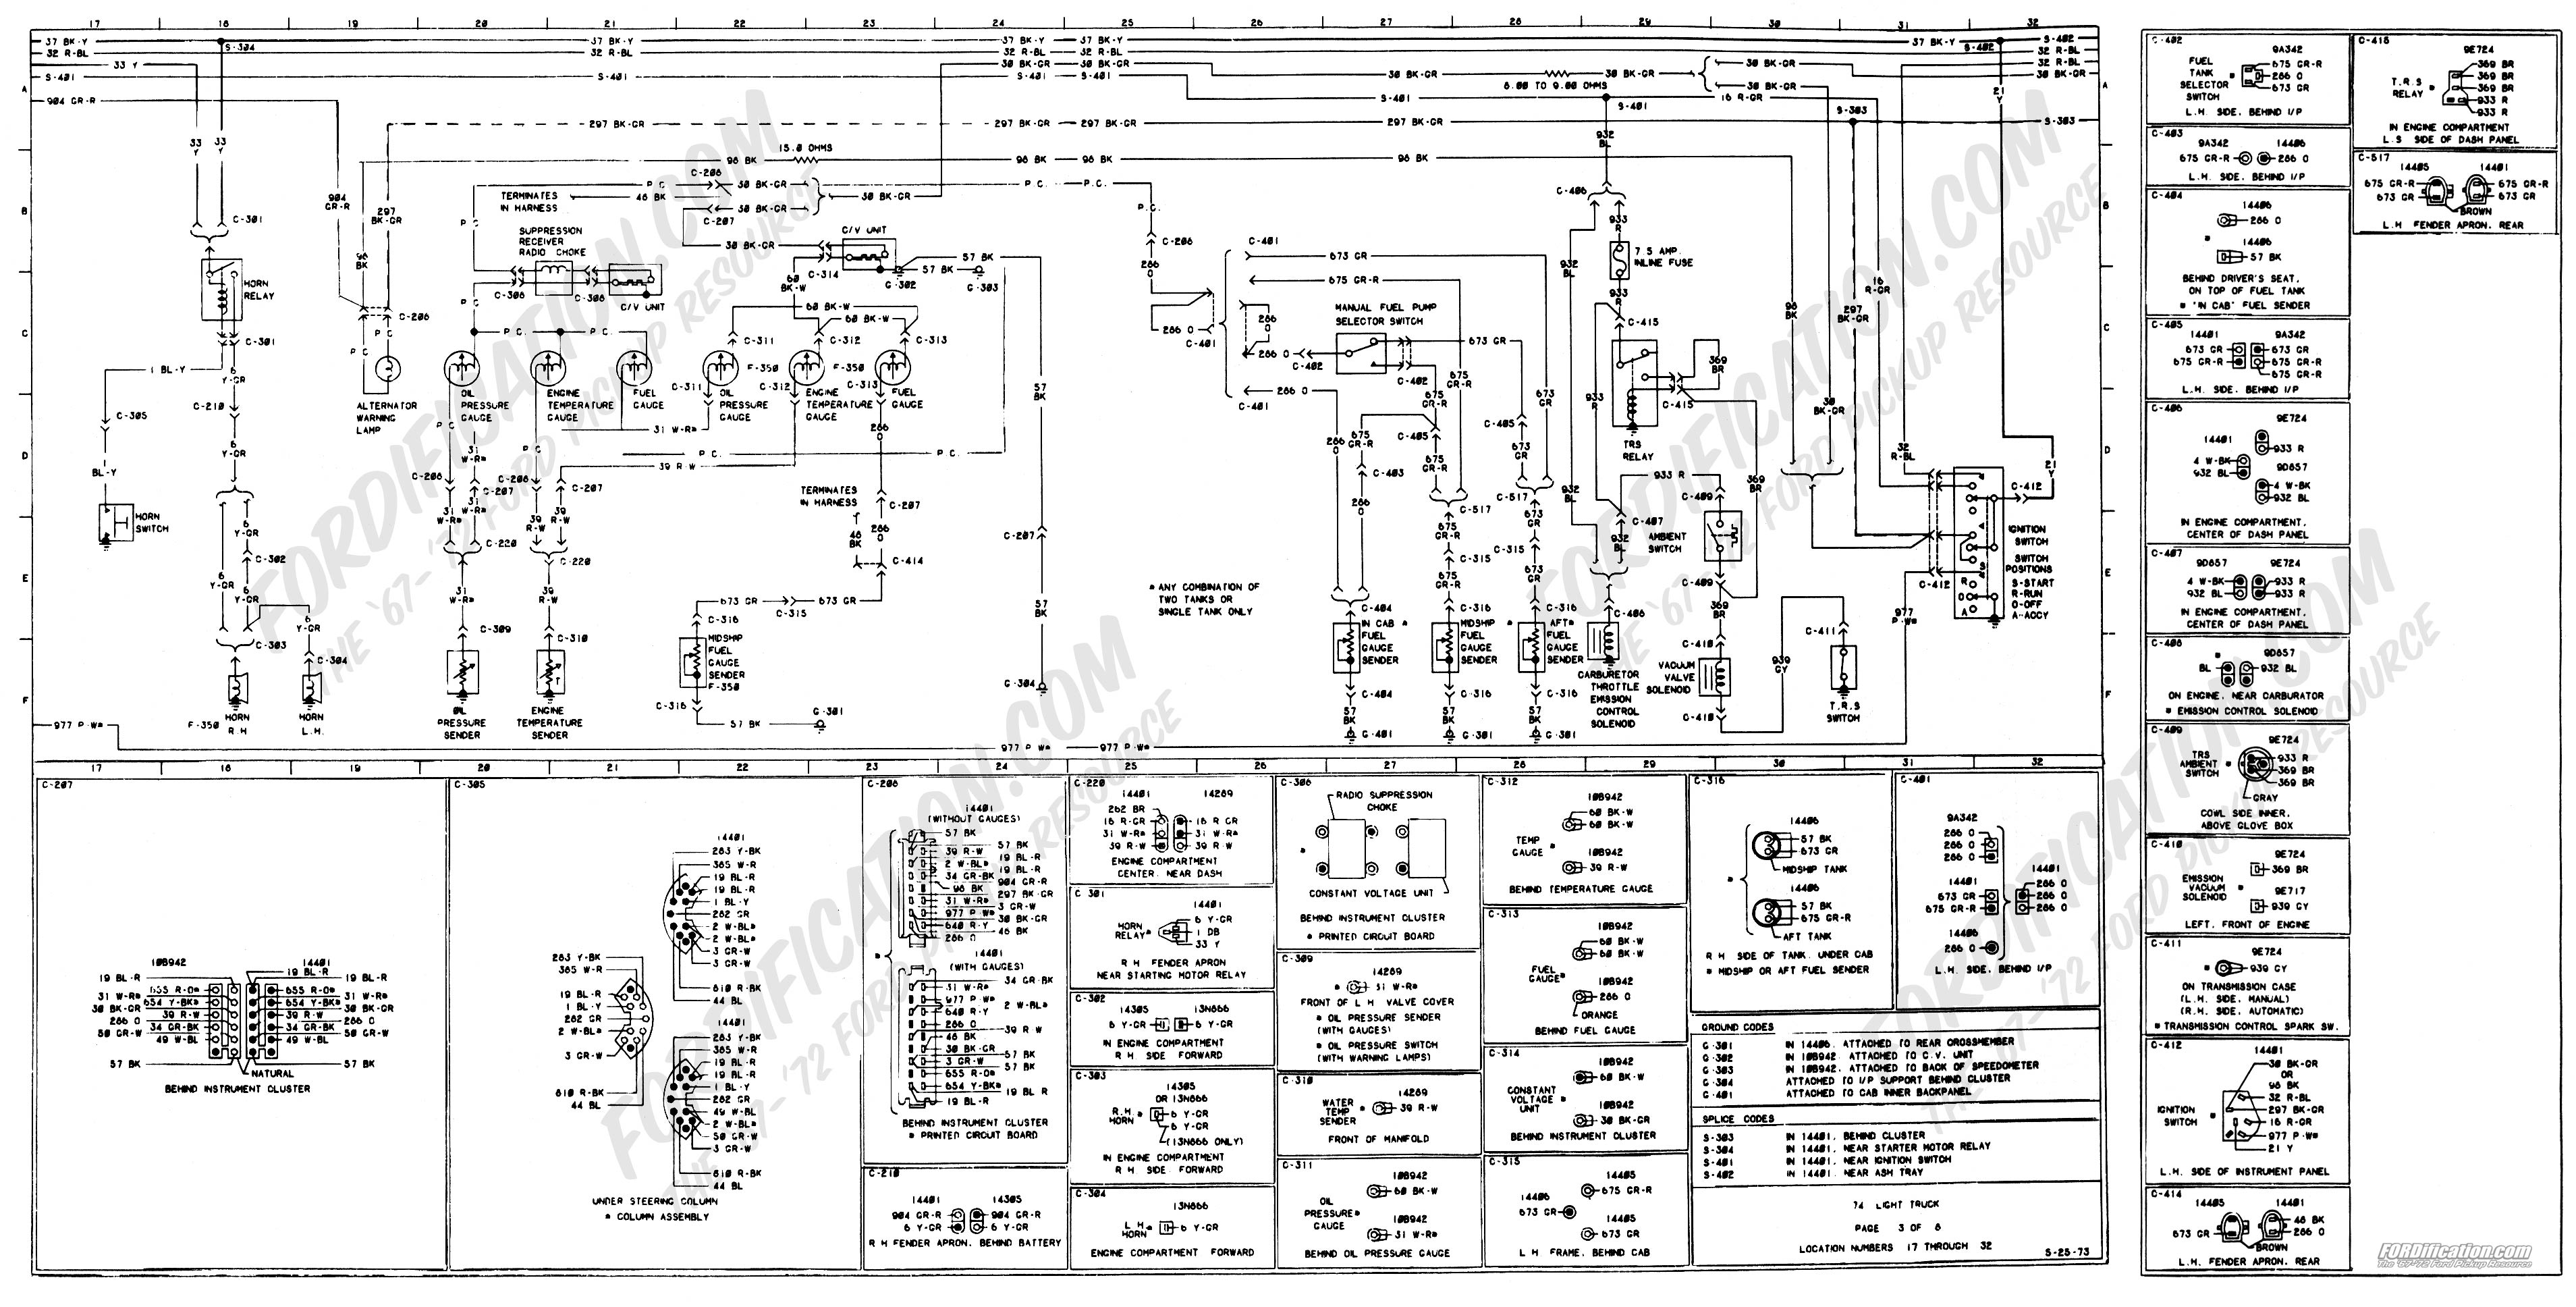 wiring_74master_3of8 1973 1979 ford truck wiring diagrams & schematics fordification net ford wiring schematics at n-0.co